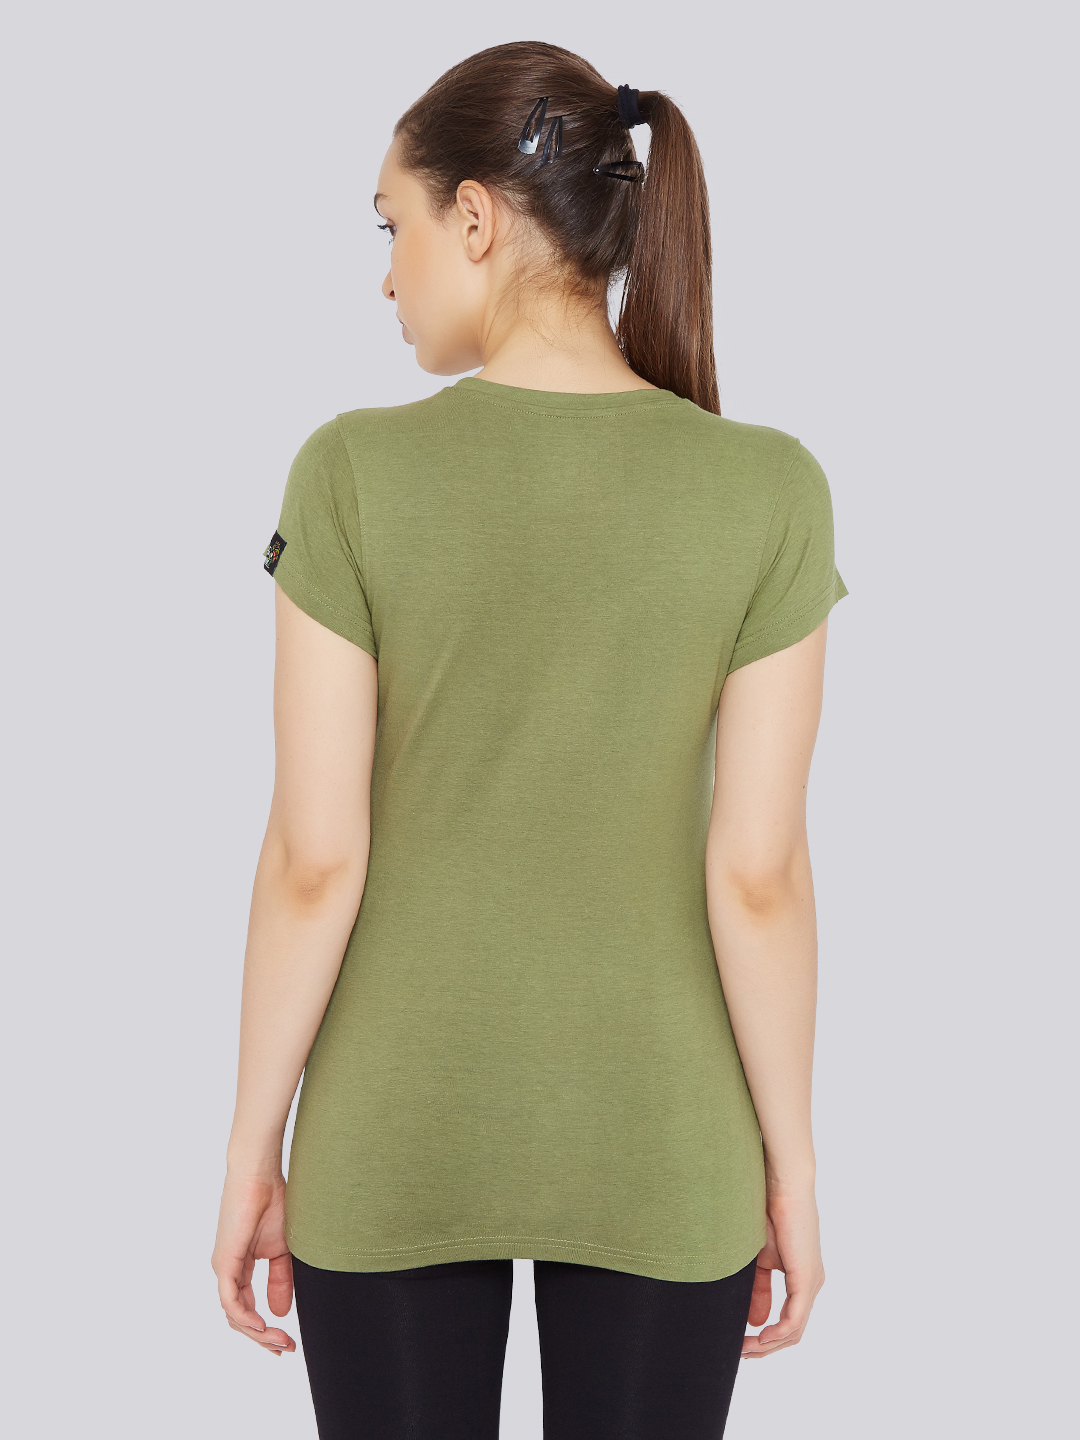 Women 39 s focus t shirt olive green bamboo tribe for T shirt printers online